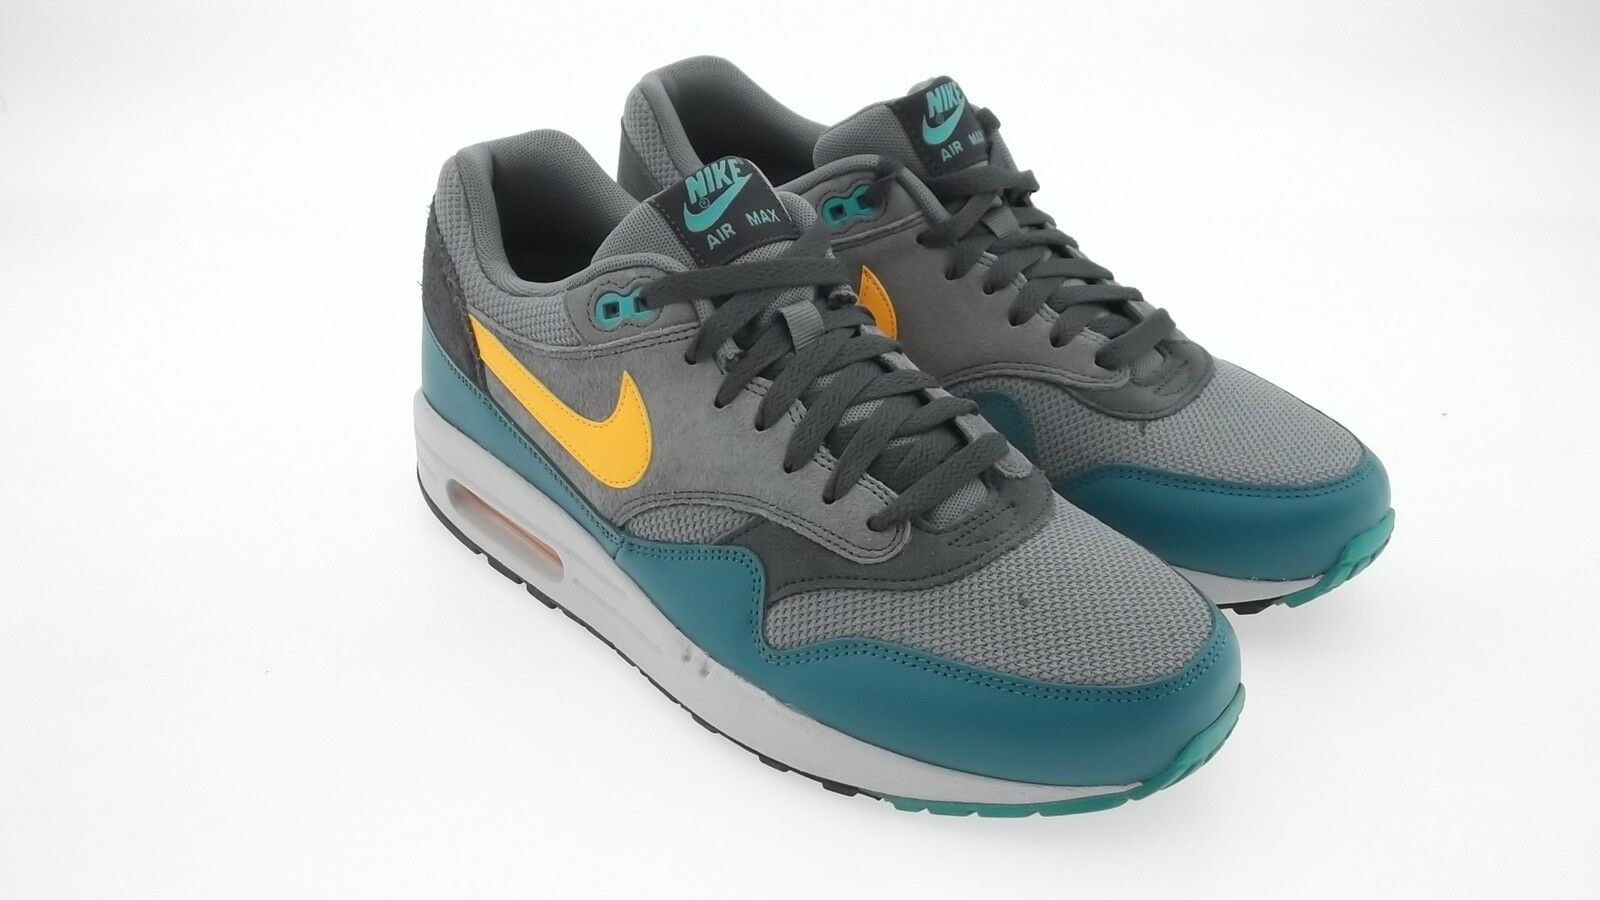 537383-018 Nike Men Air Max 1 Essential / (gray / cool gray / Essential laser orange / ctln) d29865